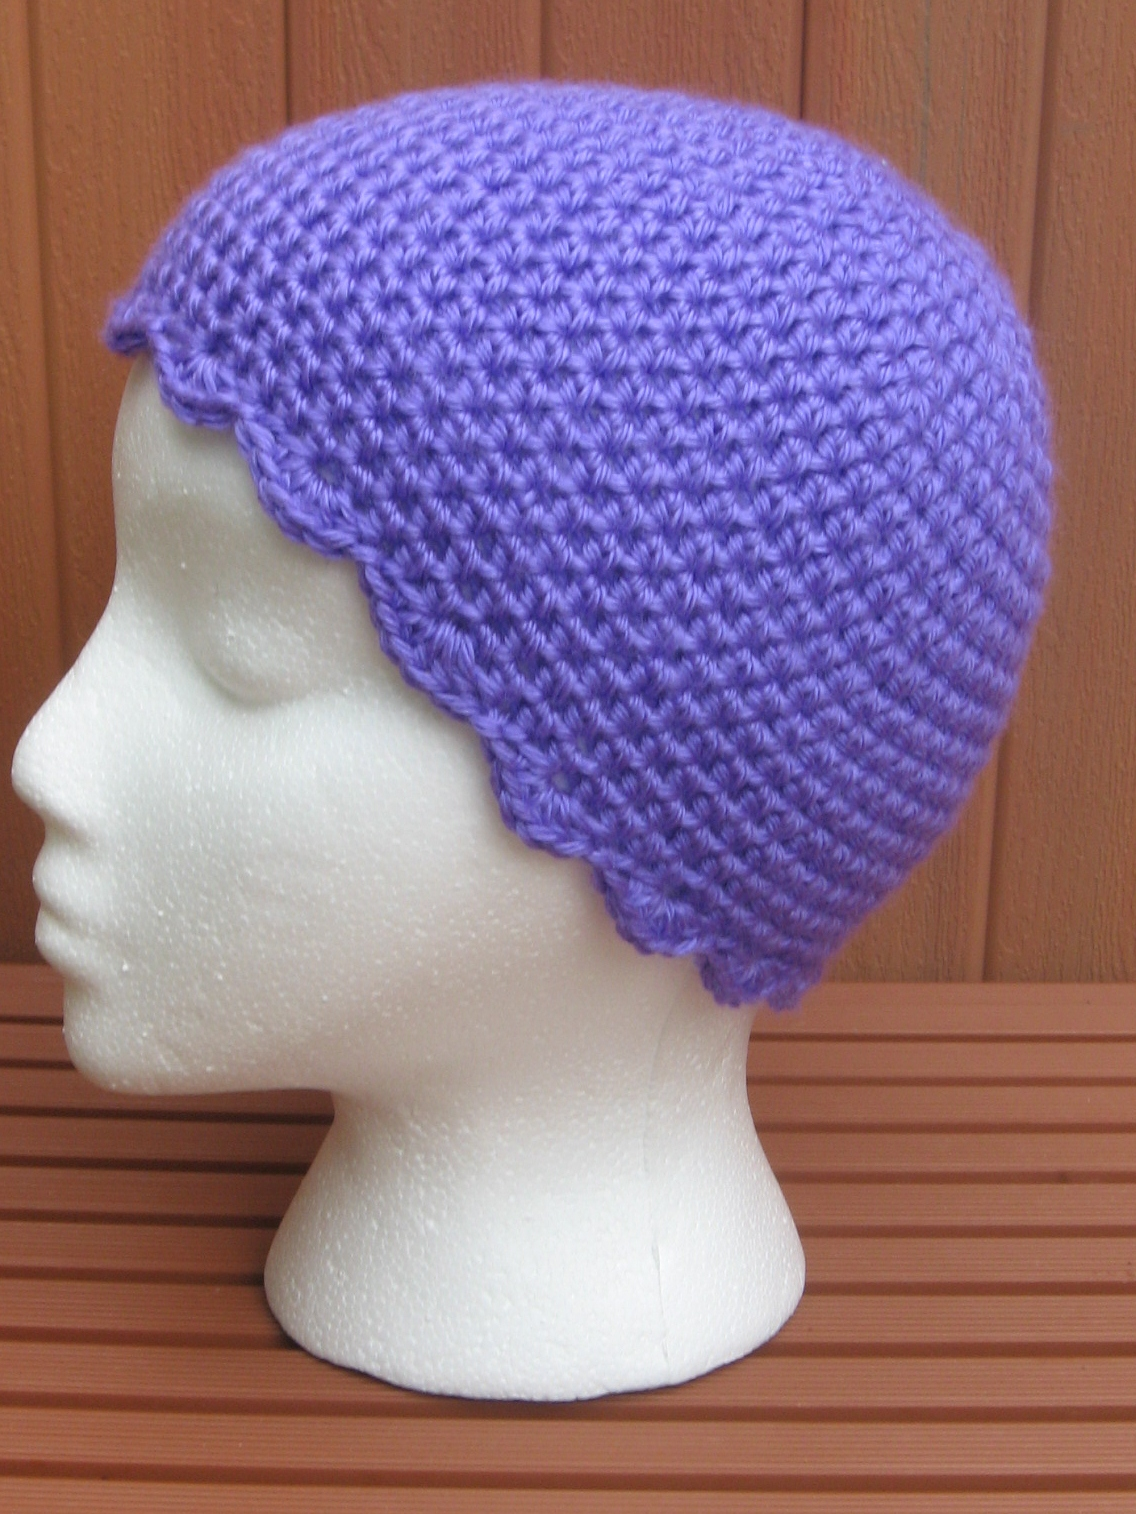 Crochet Hat Patterns Free Cancer Patients : Crochet Projects: Crochet Chemo Sleep Cap